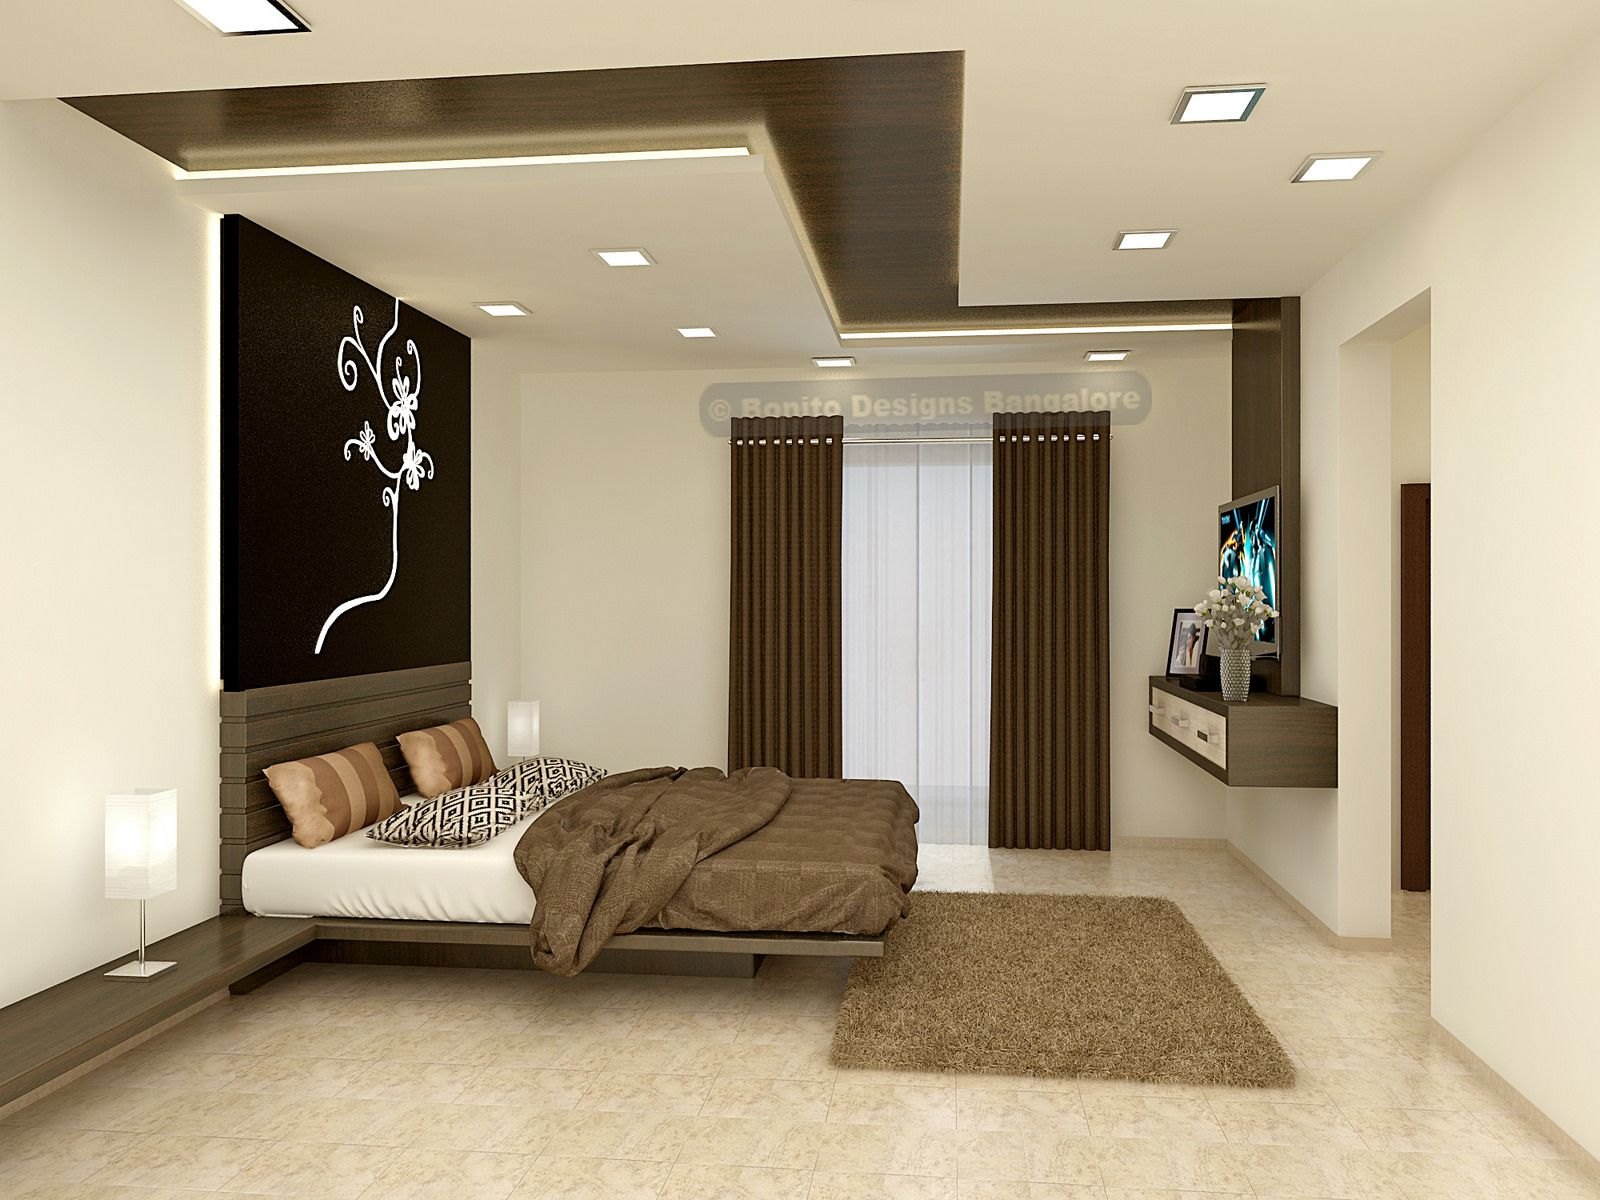 Simple False Ceiling Design, Fall Celling Design, Fall Ceiling Designs  Bedroom, False Ceiling